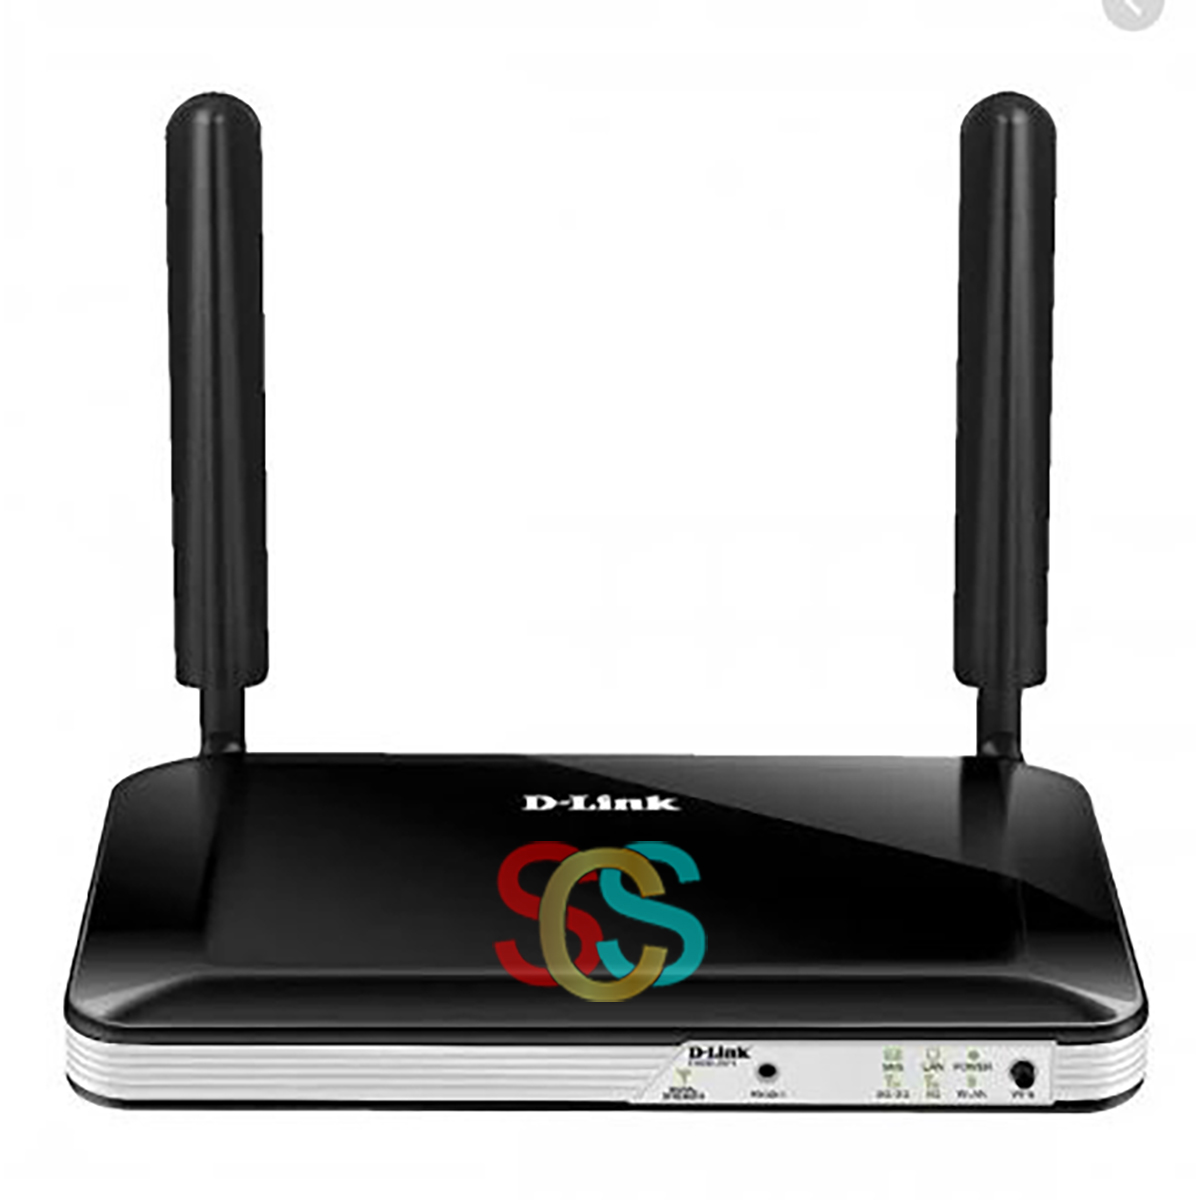 D-Link DWR-921 300 Mbps 3G/4G & Ethernet Single-Band Wi-Fi Router